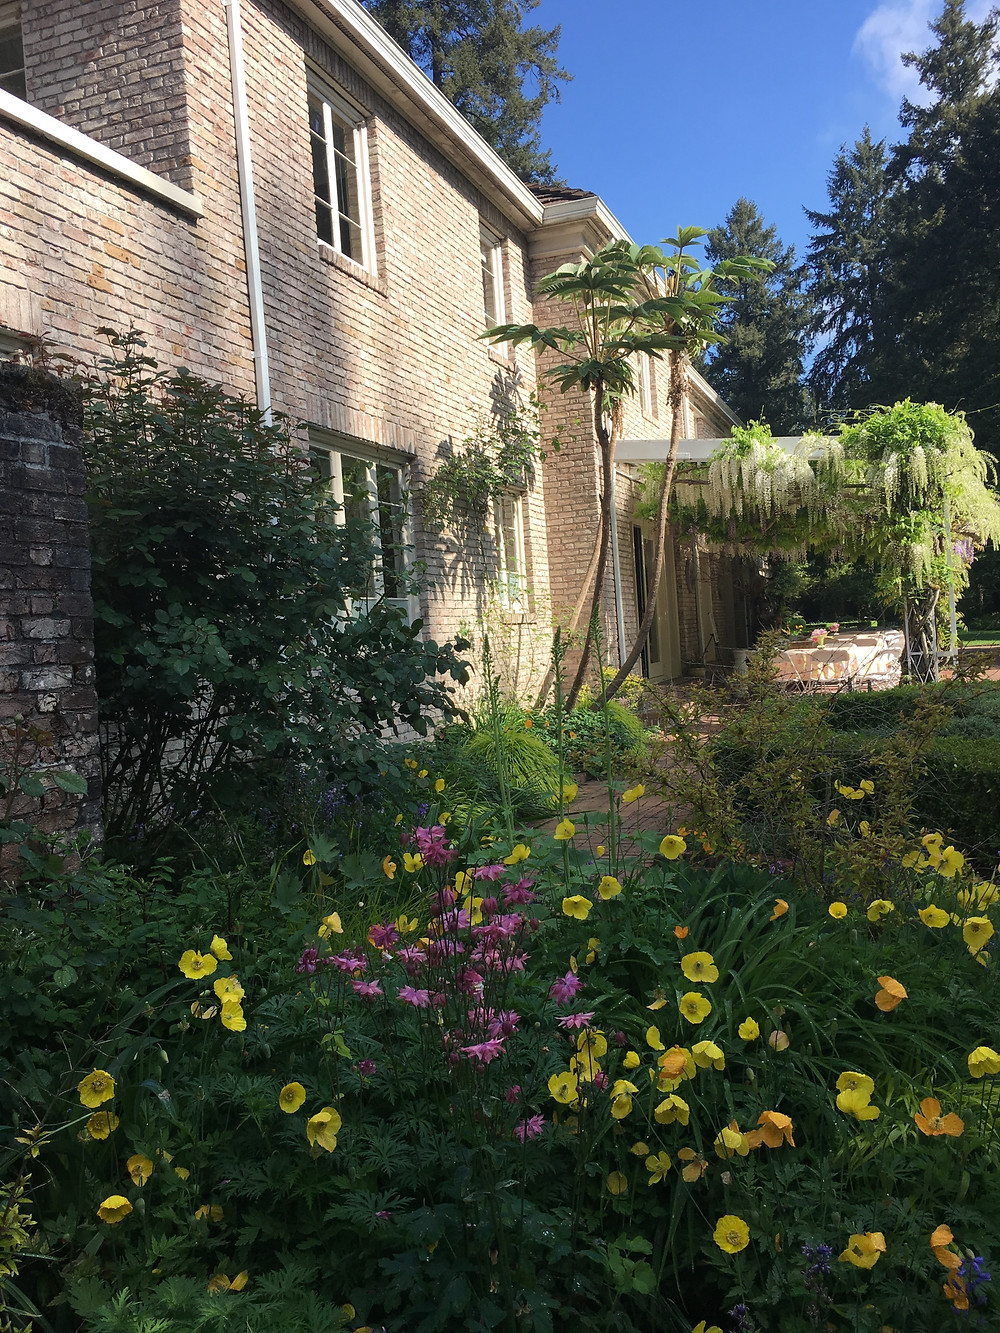 Lakewold Gardens with wisteria and spring flowers blooming